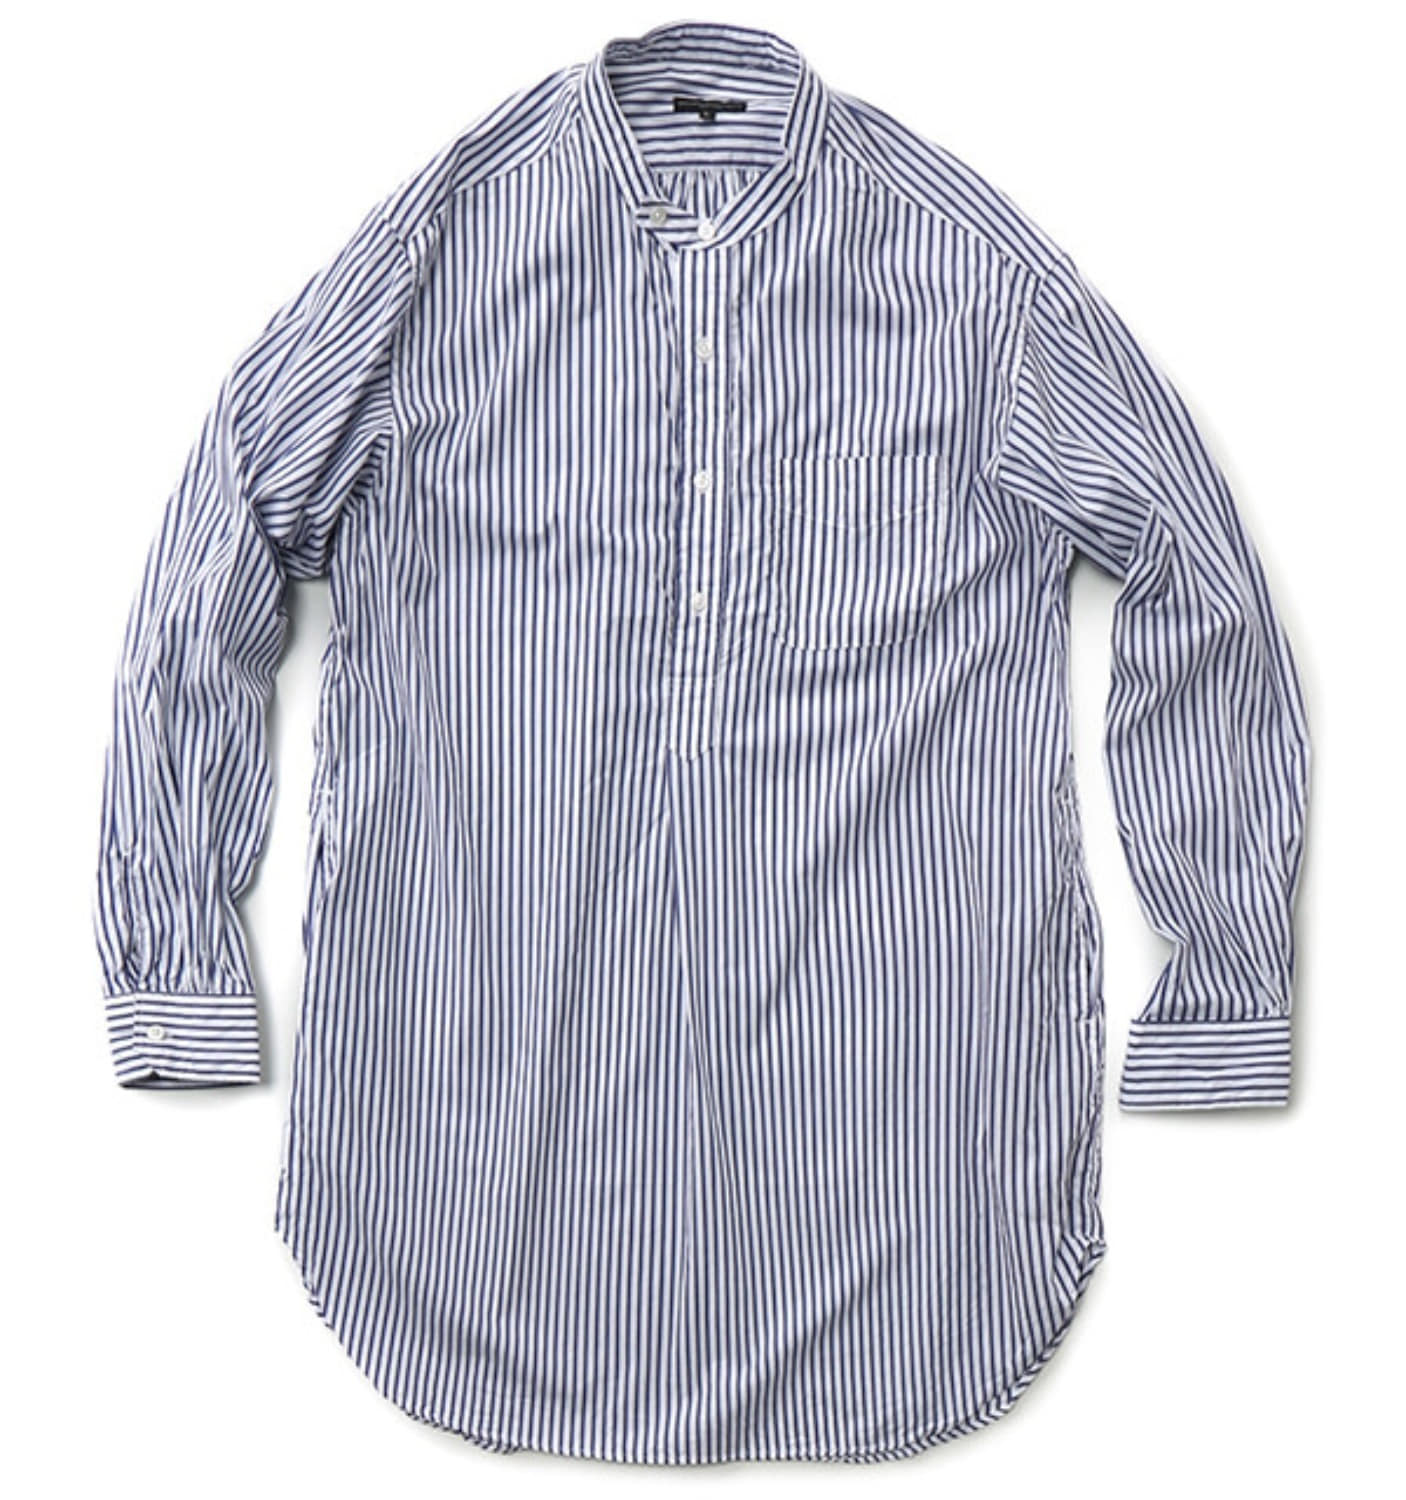 BANDED COLLAR SHIRT BLUE/WHITE WIDE STRIPE